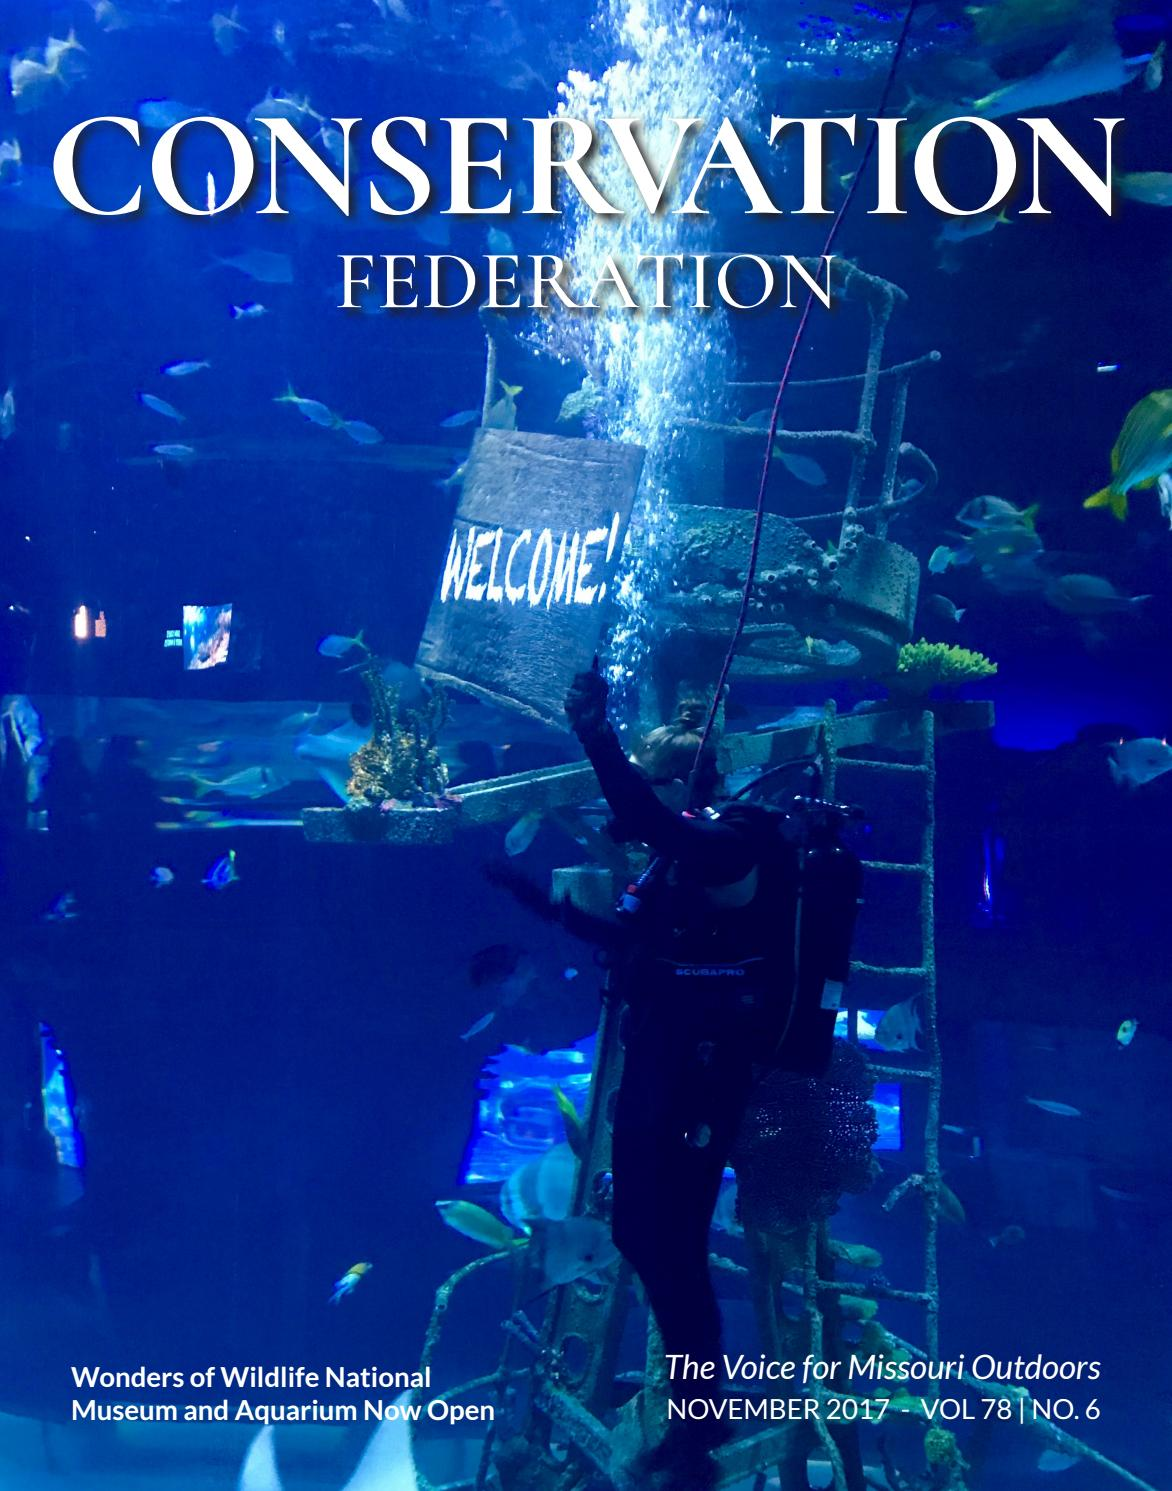 November 2017 vol 78 no 6 by Conservation Federation - issuu